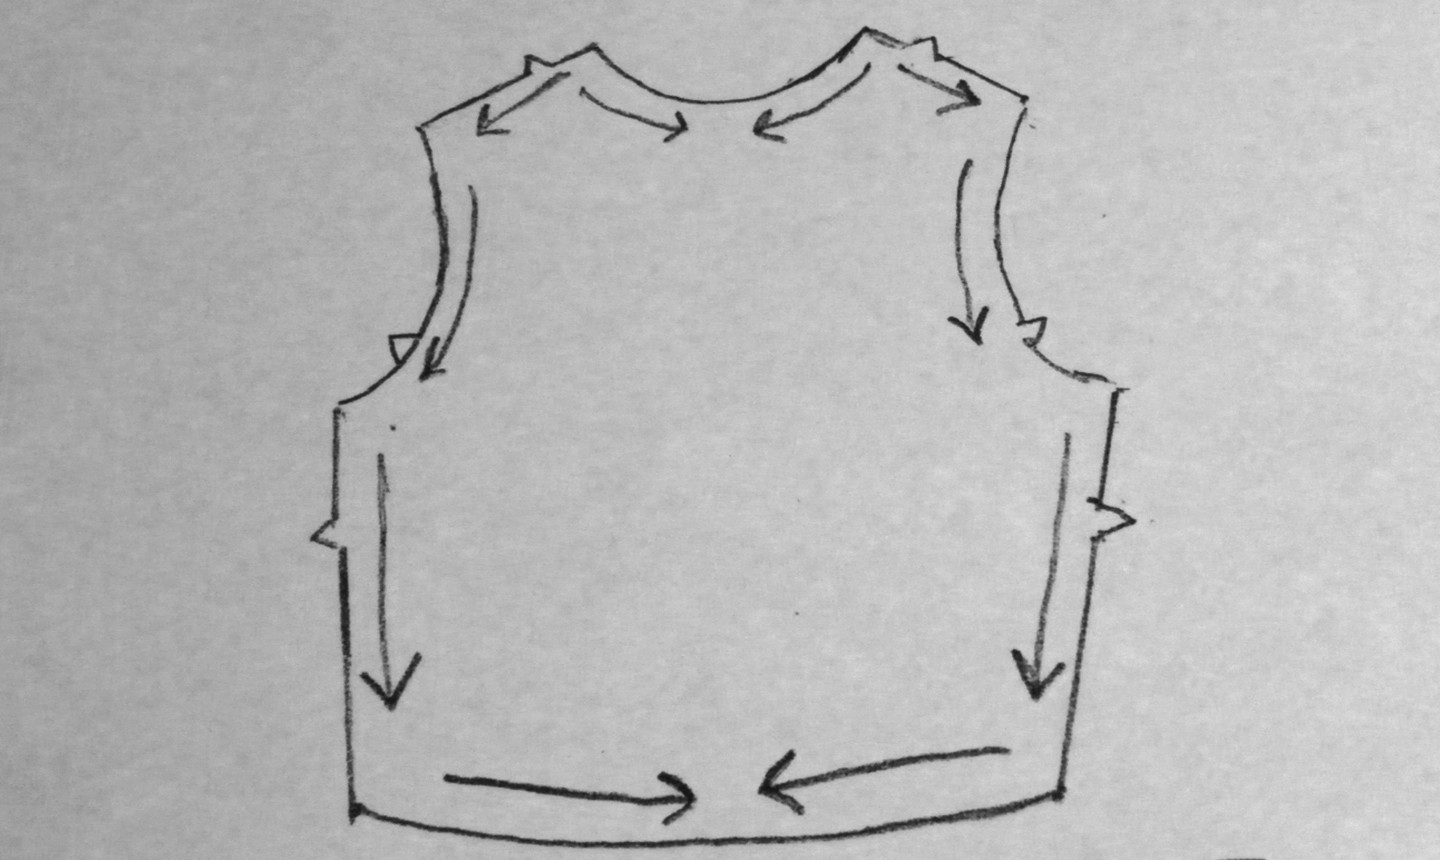 diagram on staystitching top piece